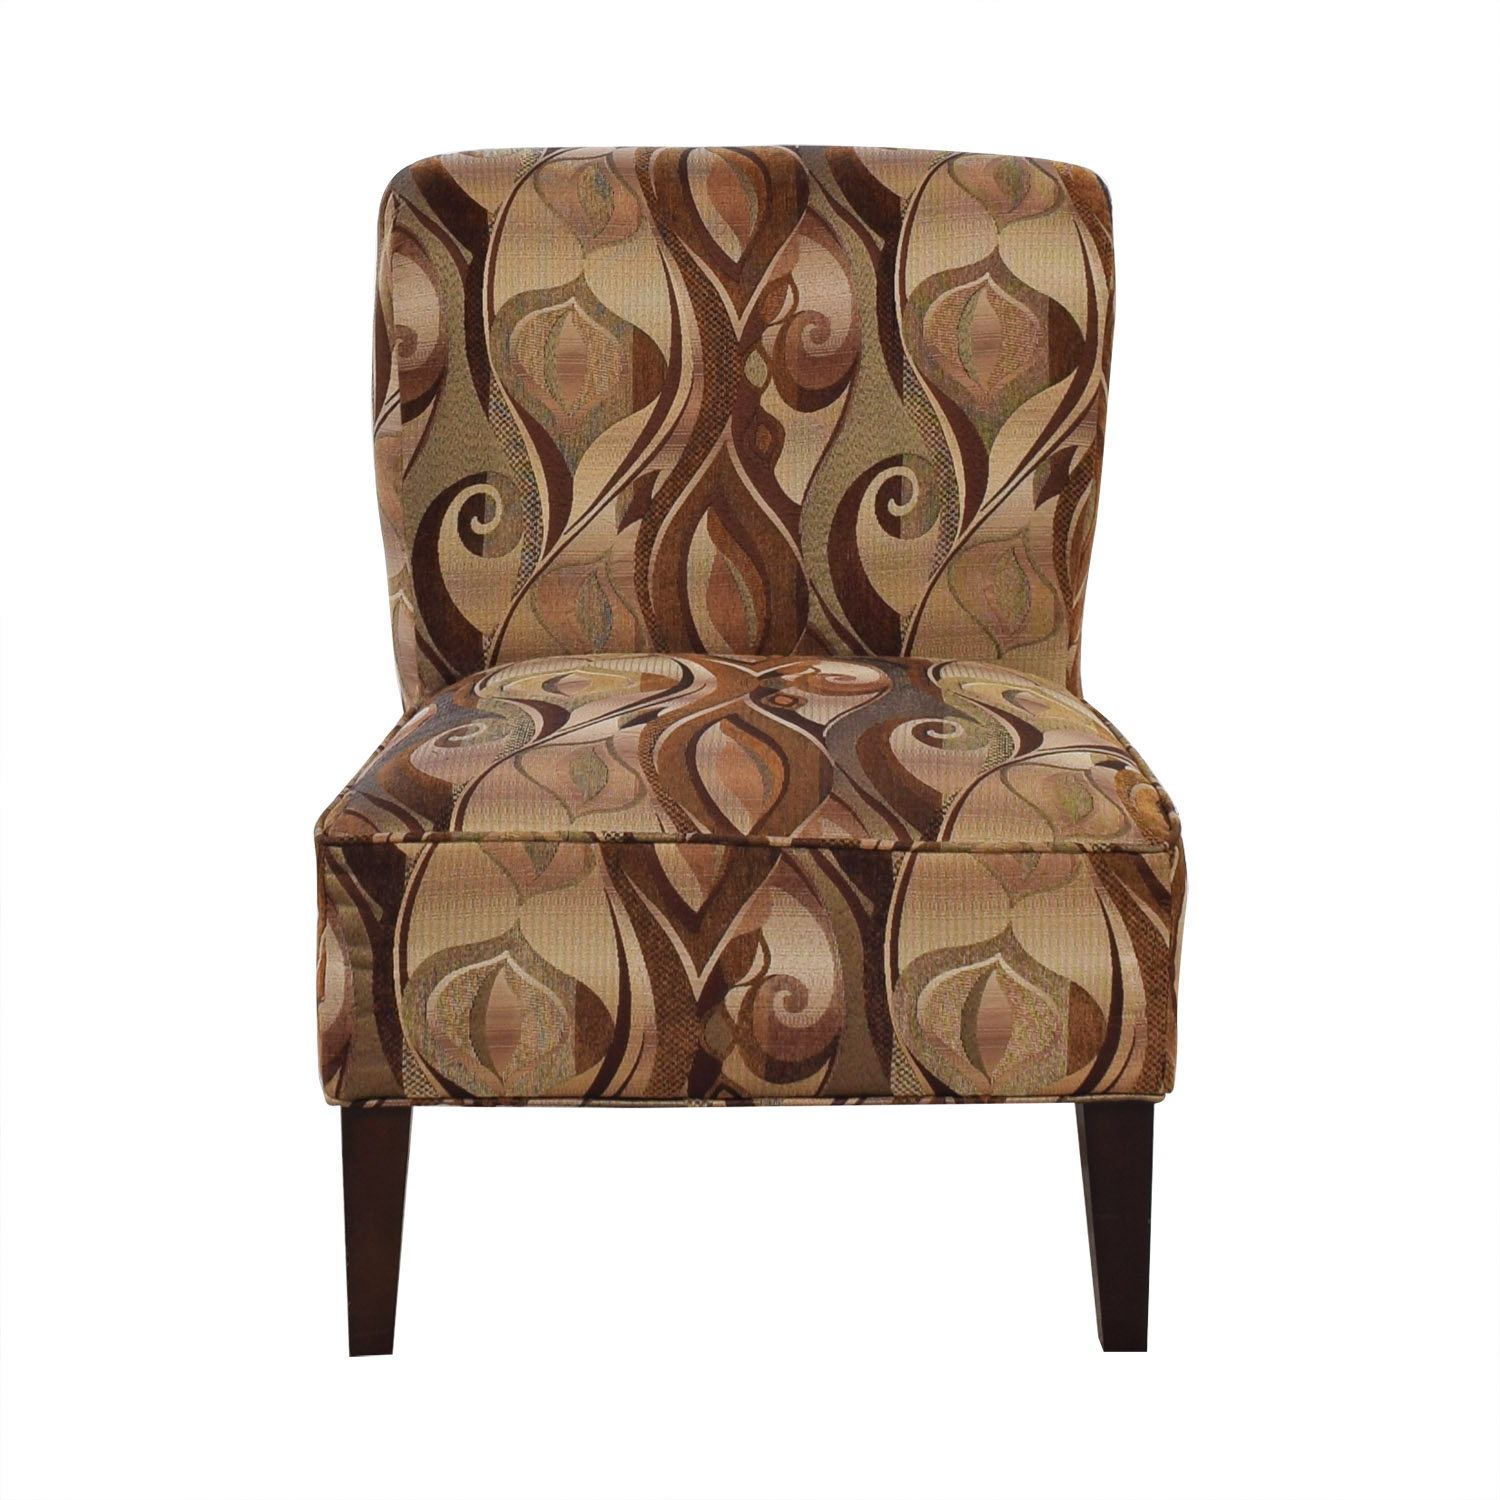 Accent Trend Accent Trend Armless Chair for sale